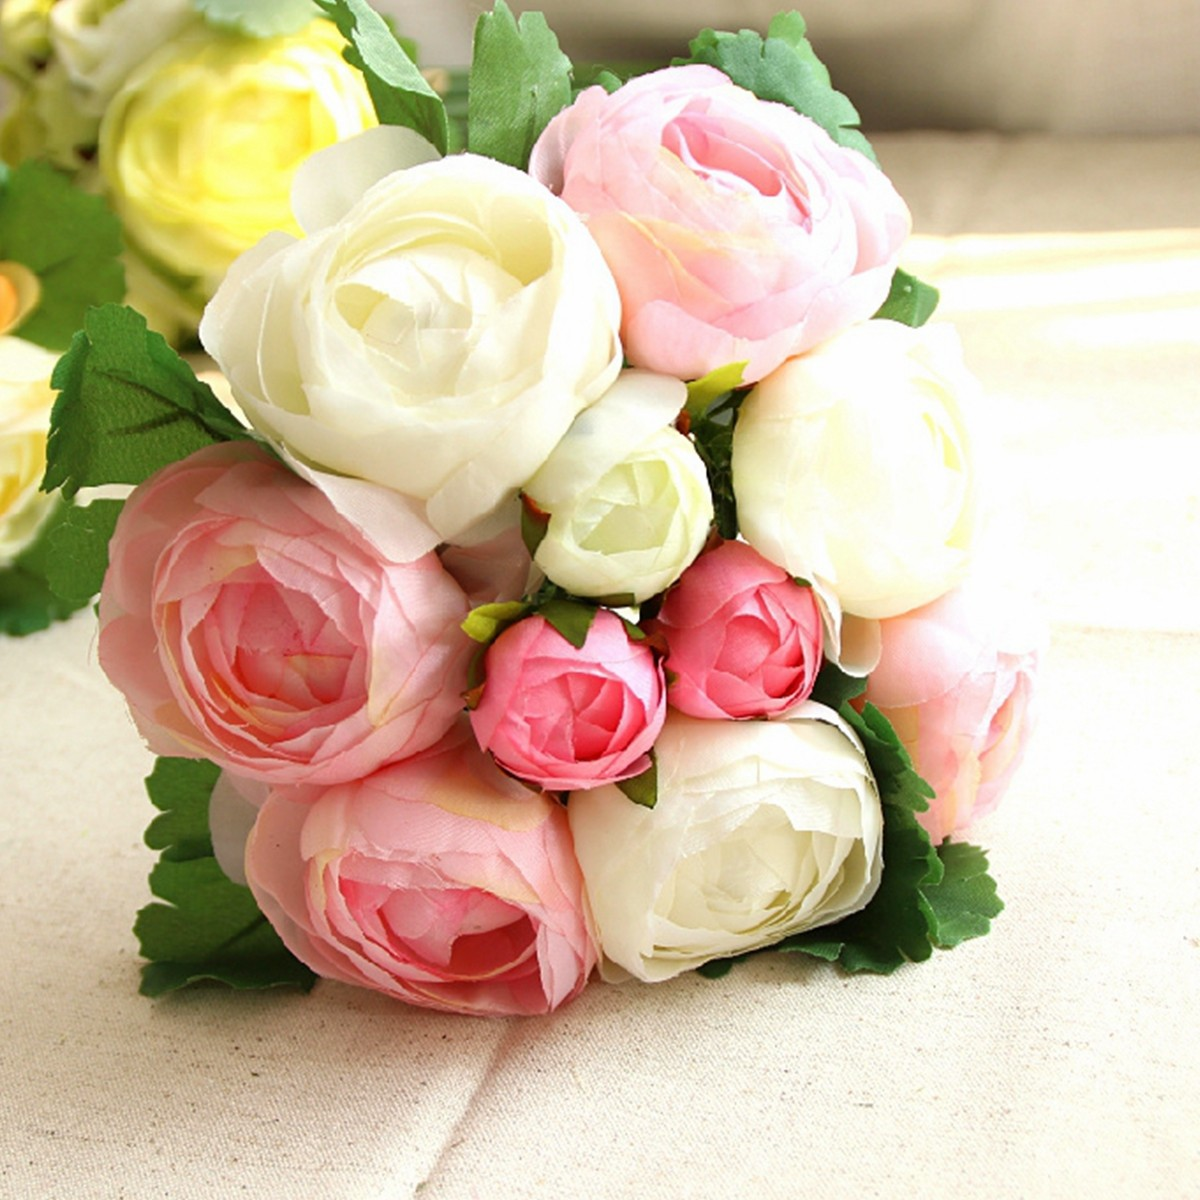 Artificial silk flower peony bouquet 9 heads flowers home cafe da80502b 8fab dace 077c 99b7e6ff33acg mightylinksfo